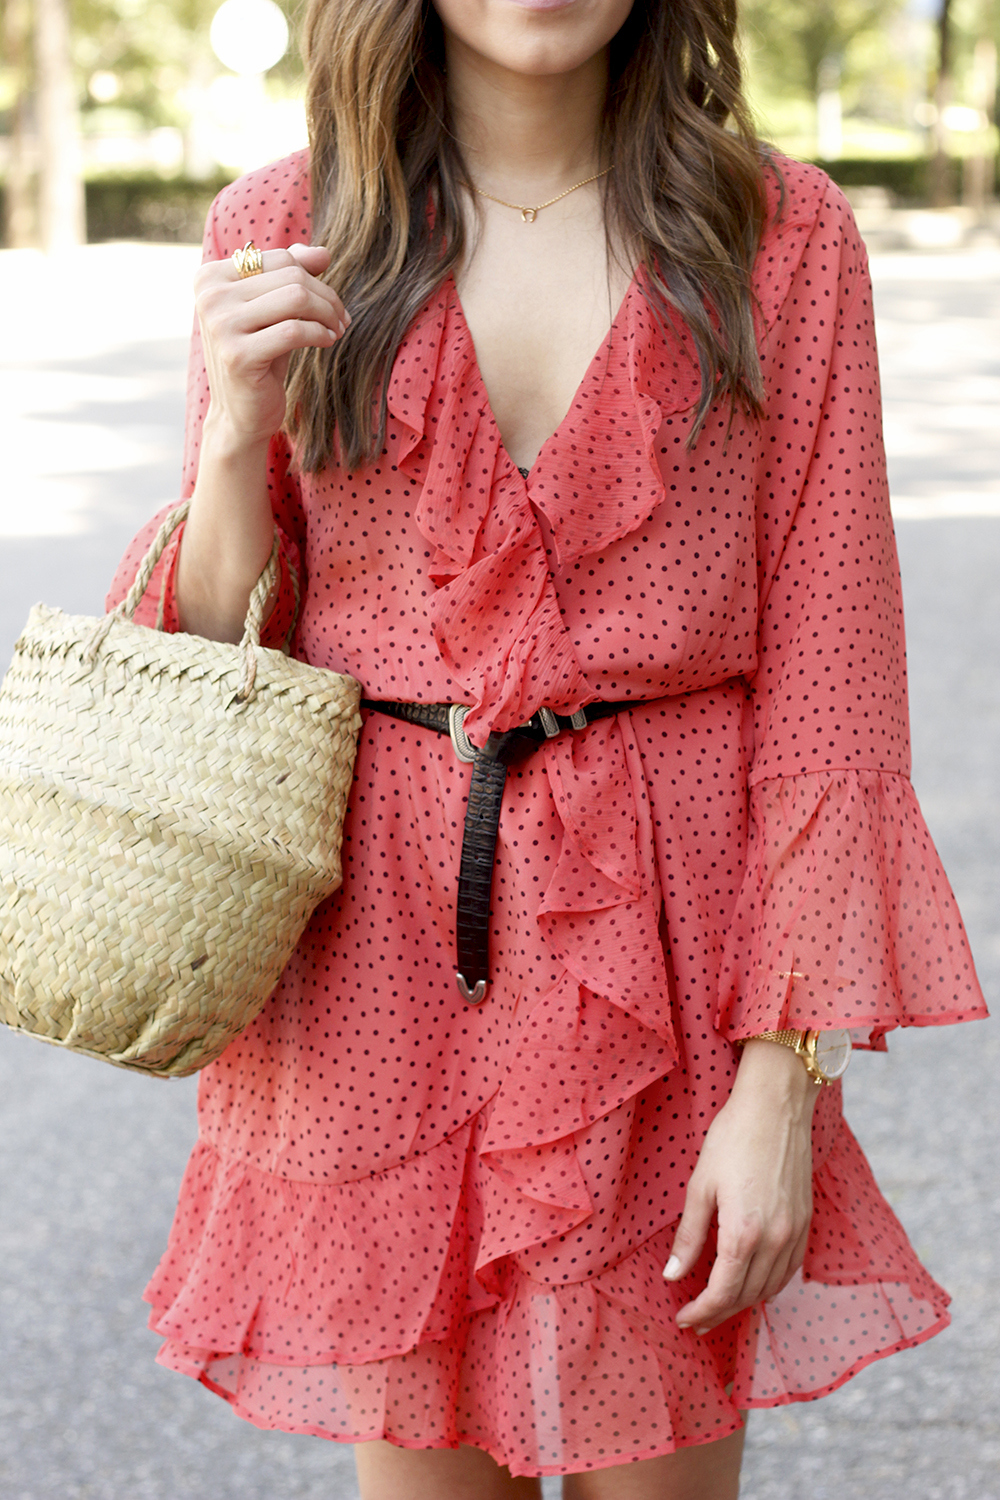 coral dress with dots and frills uterqüe black heels summer outfit style fashion13